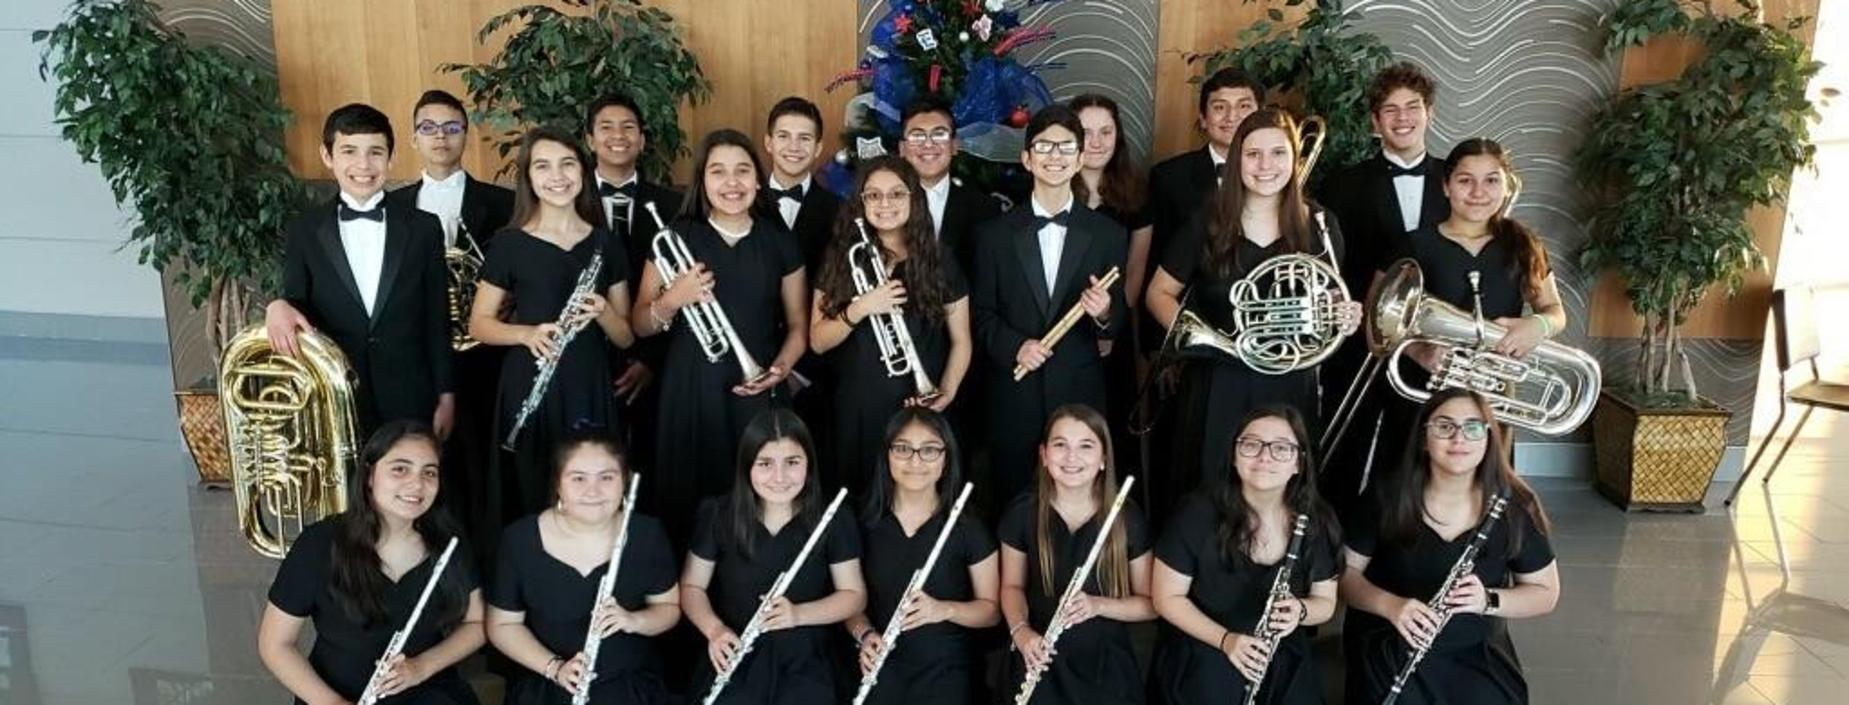 Picture of 2019-20 All City Band Members